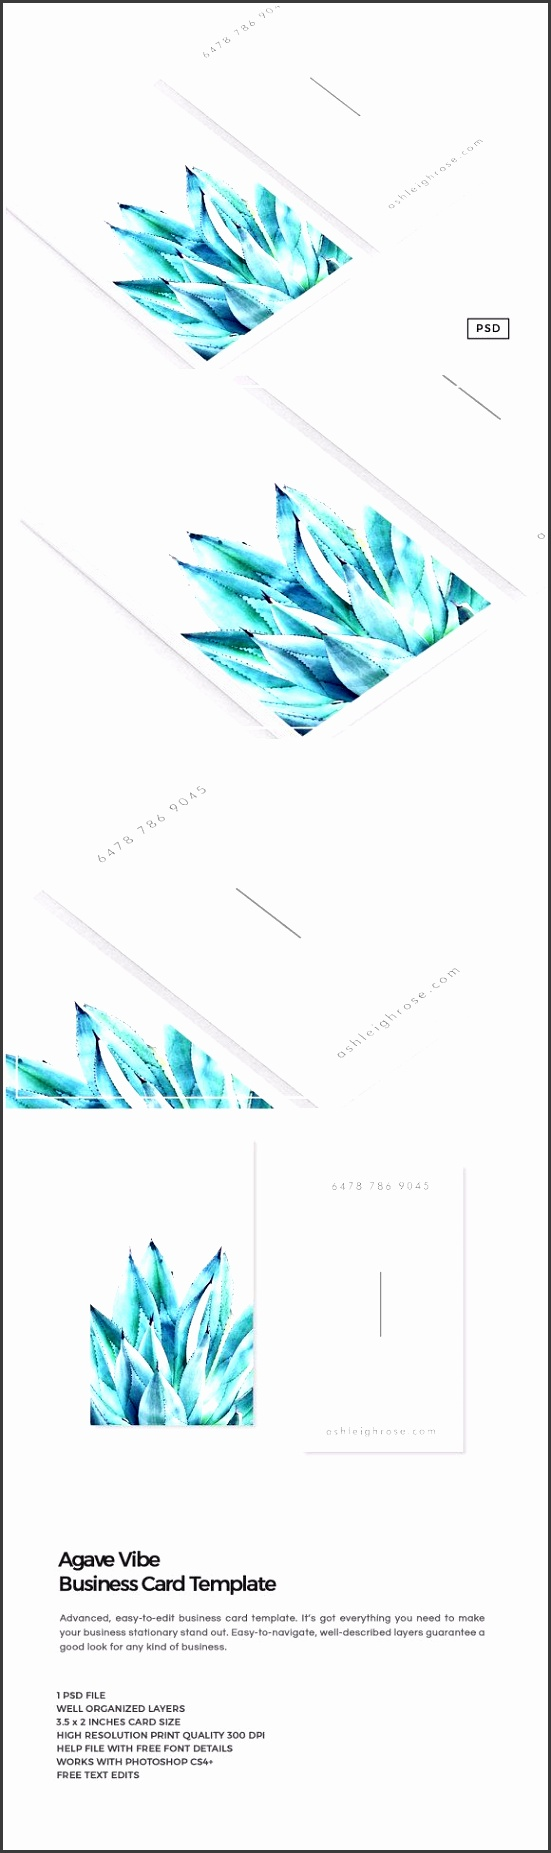 Agave Vibe Business Card Template by The Design Label on creativemarket